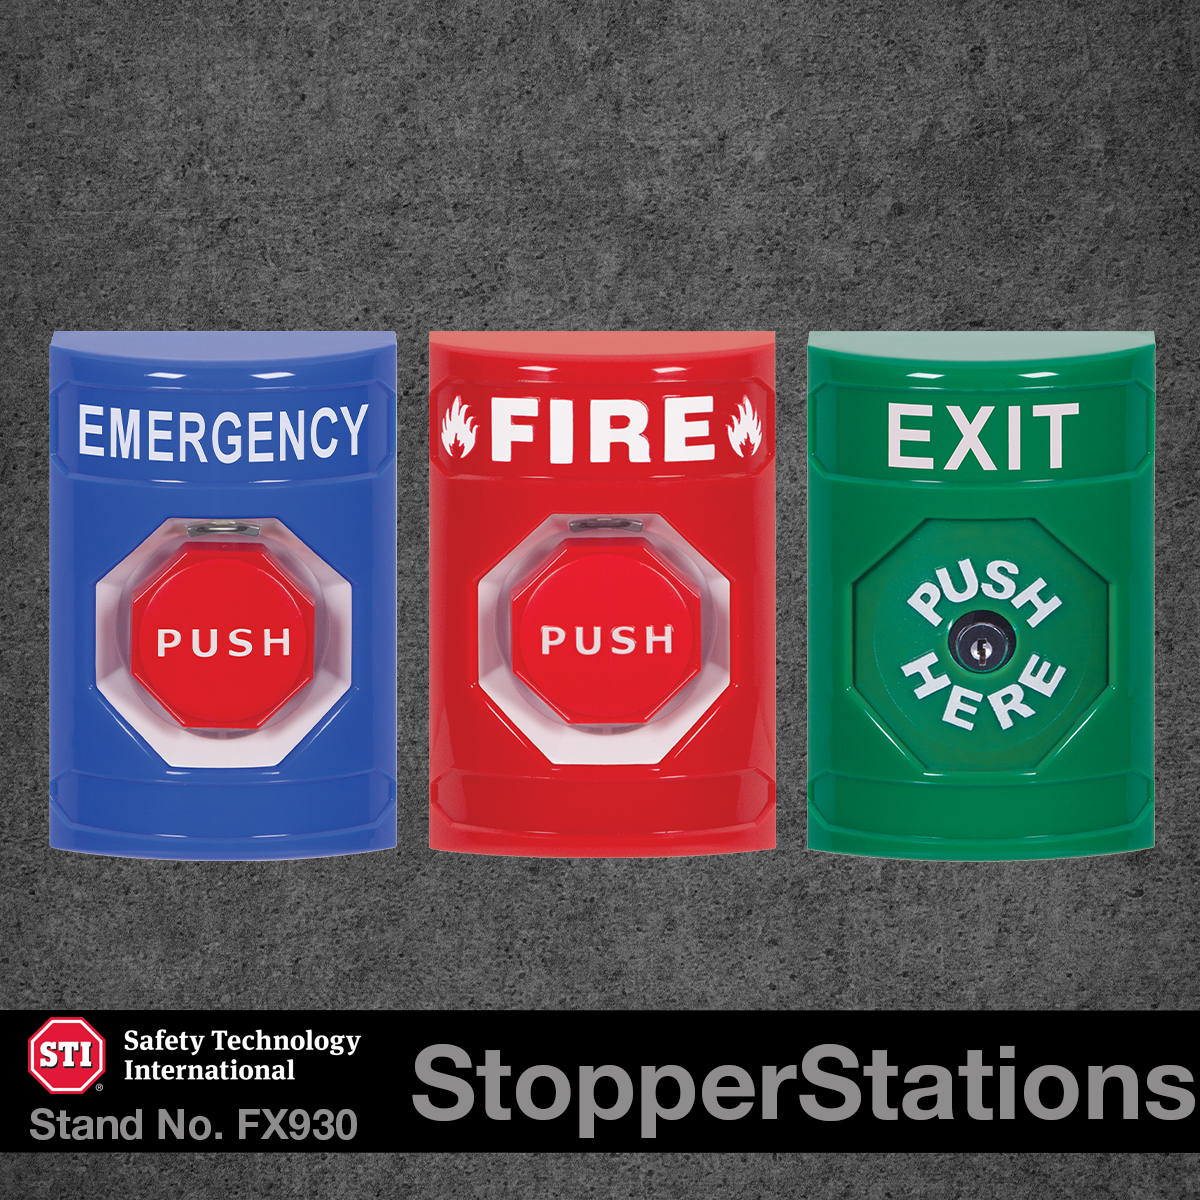 Stopper ® Stations